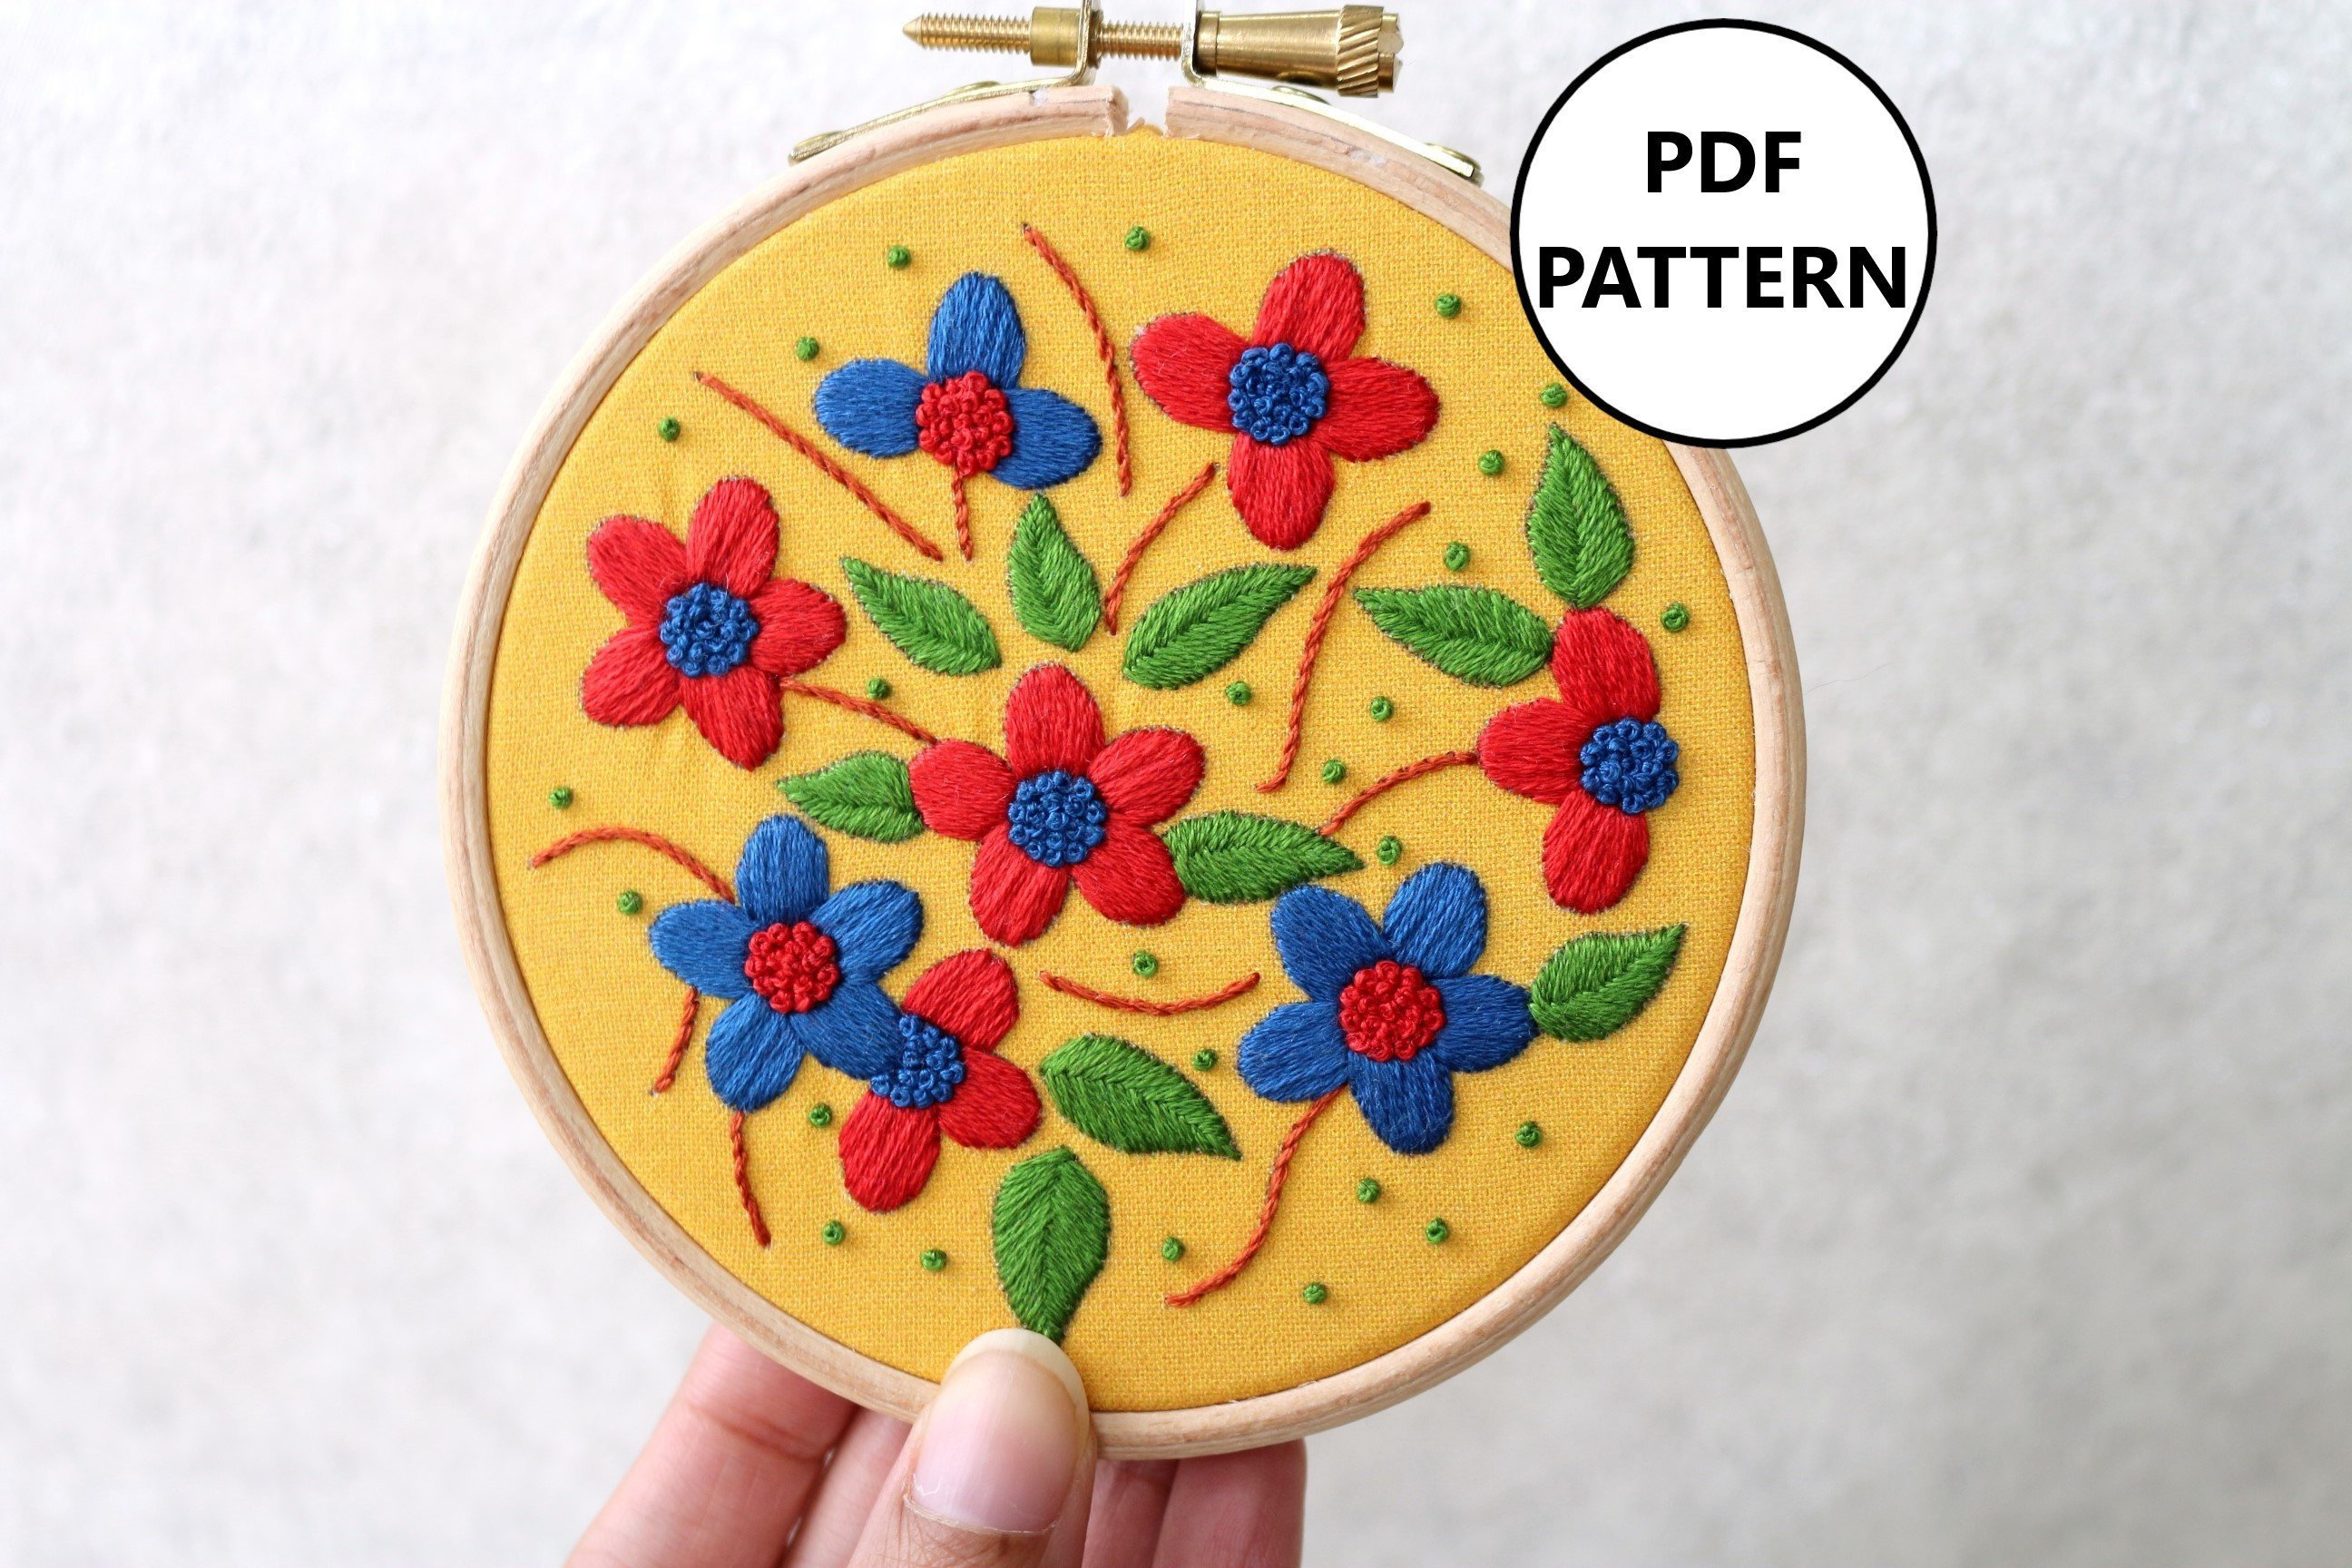 How To Make Your Own Embroidery Pattern Floral Embroidery Pattern Pdf Embroidery Pattern Embroidery Pattern Beginner Digital Download Floral Hoop Art Embroidery Flowers Diy